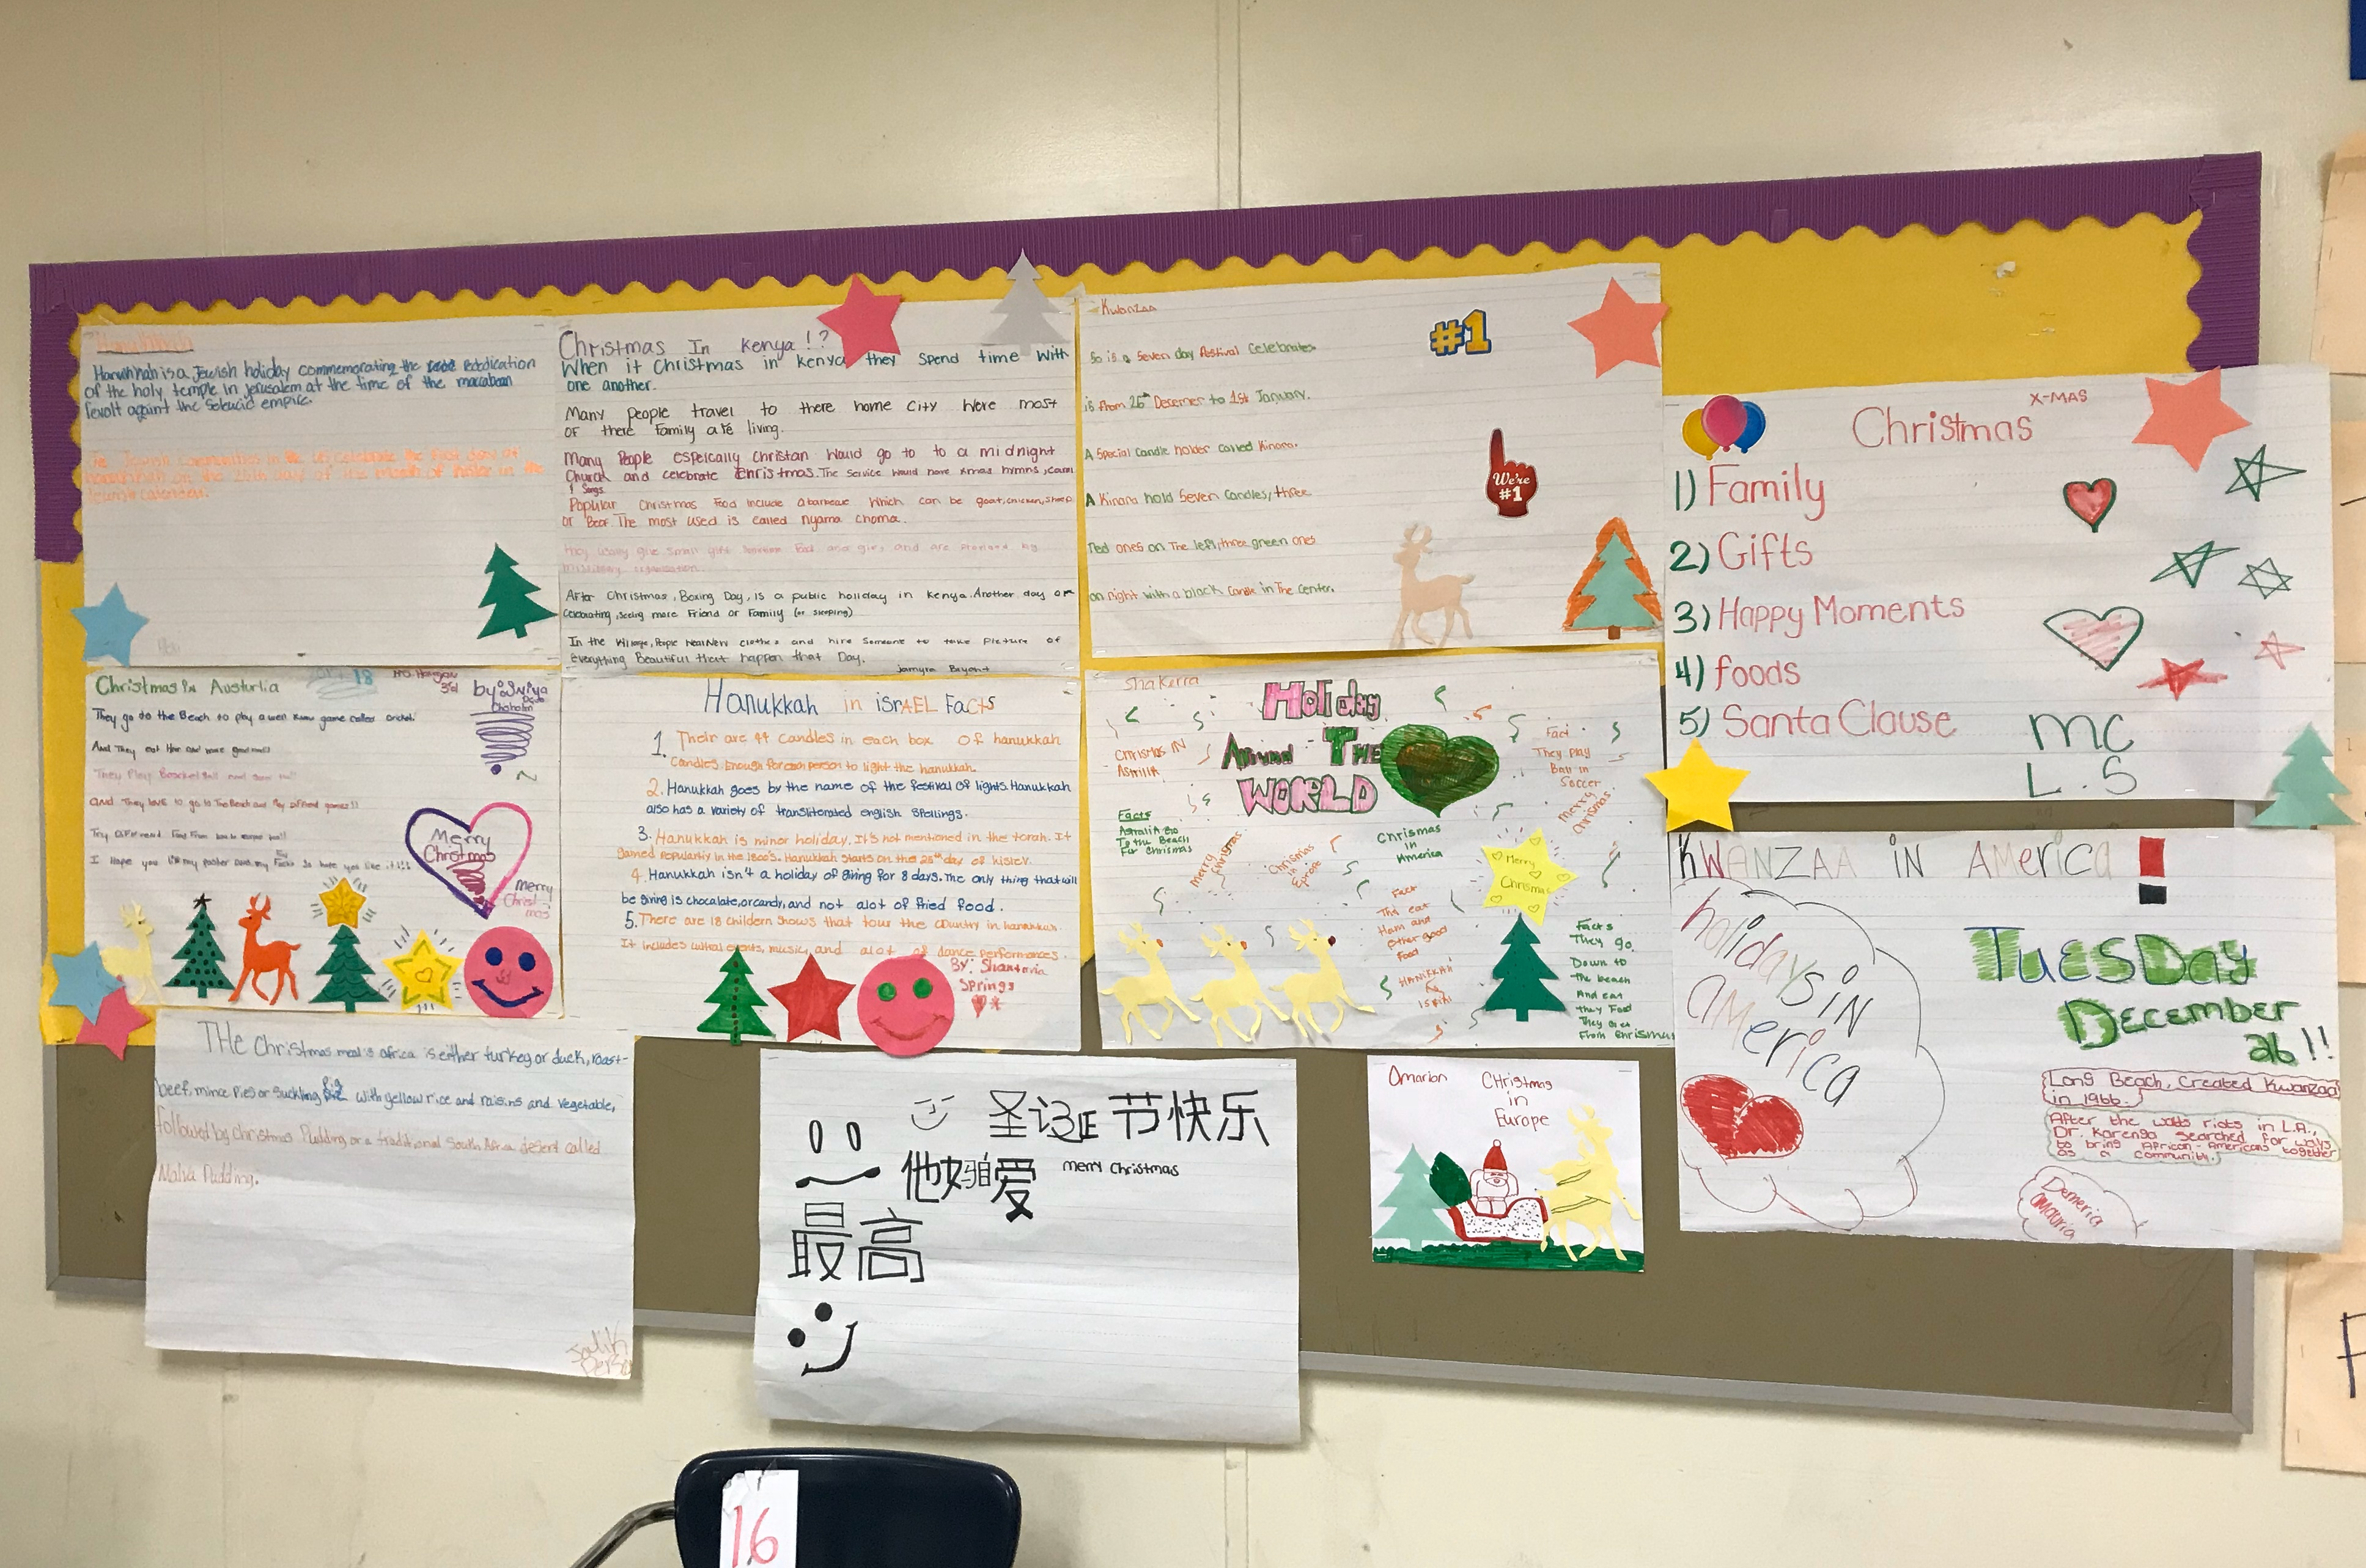 A classroom pinboard. There is some coloured paper backing and border, but most has been torn away. The board is covered with posters with colourful handwriting and paper cut-outs in the shape of Christmas trees, stars, and reindeer.